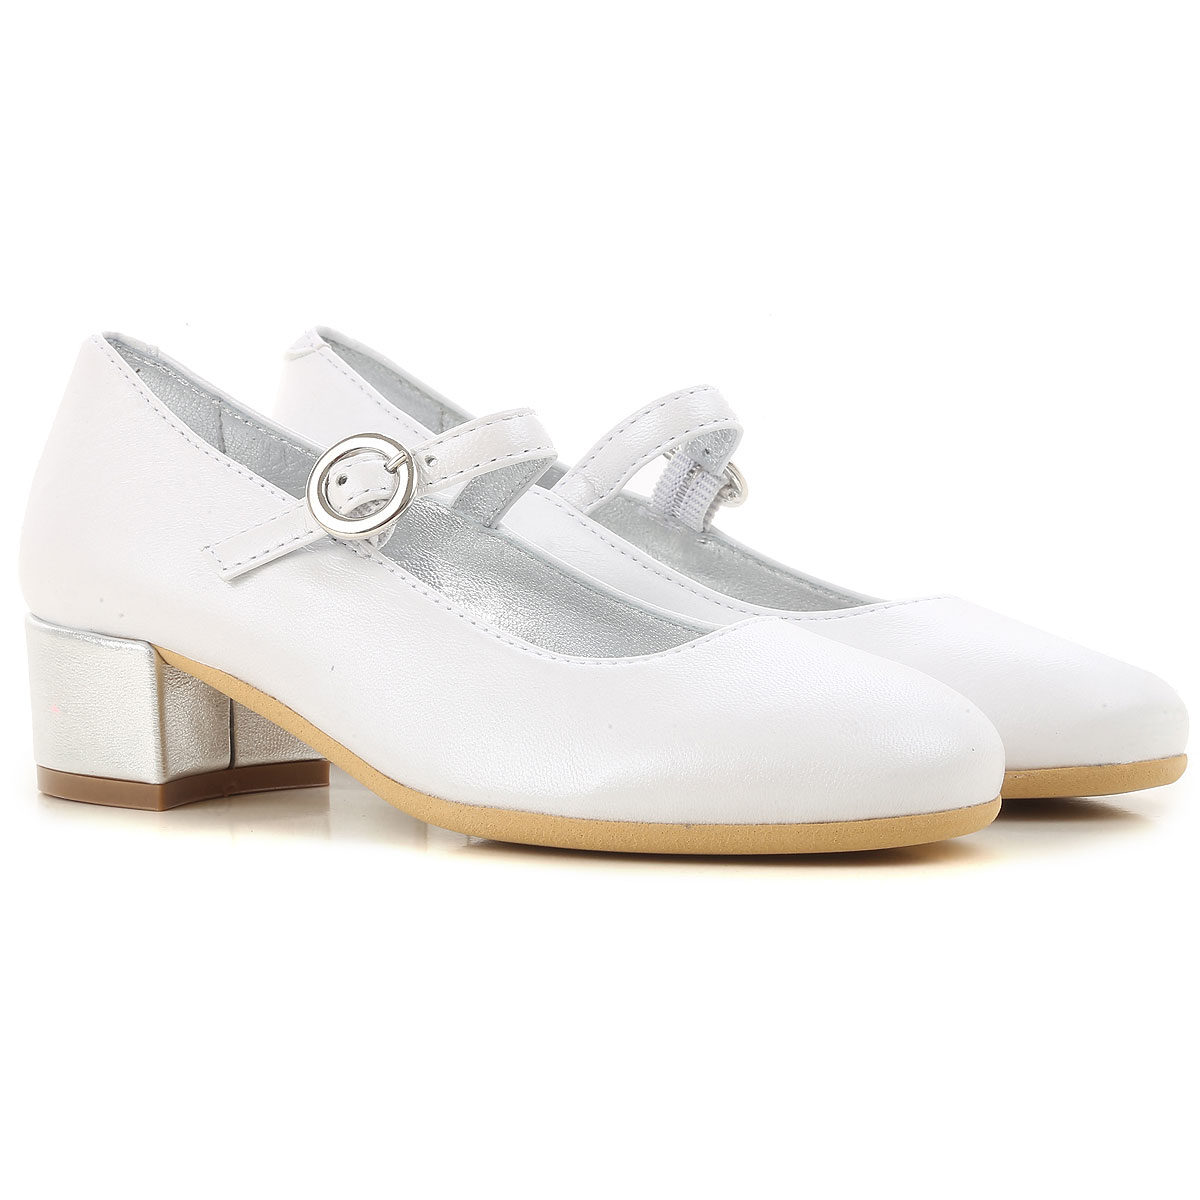 Monnalisa Kids Shoes for Girls in Outlet White Canada - GOOFASH -